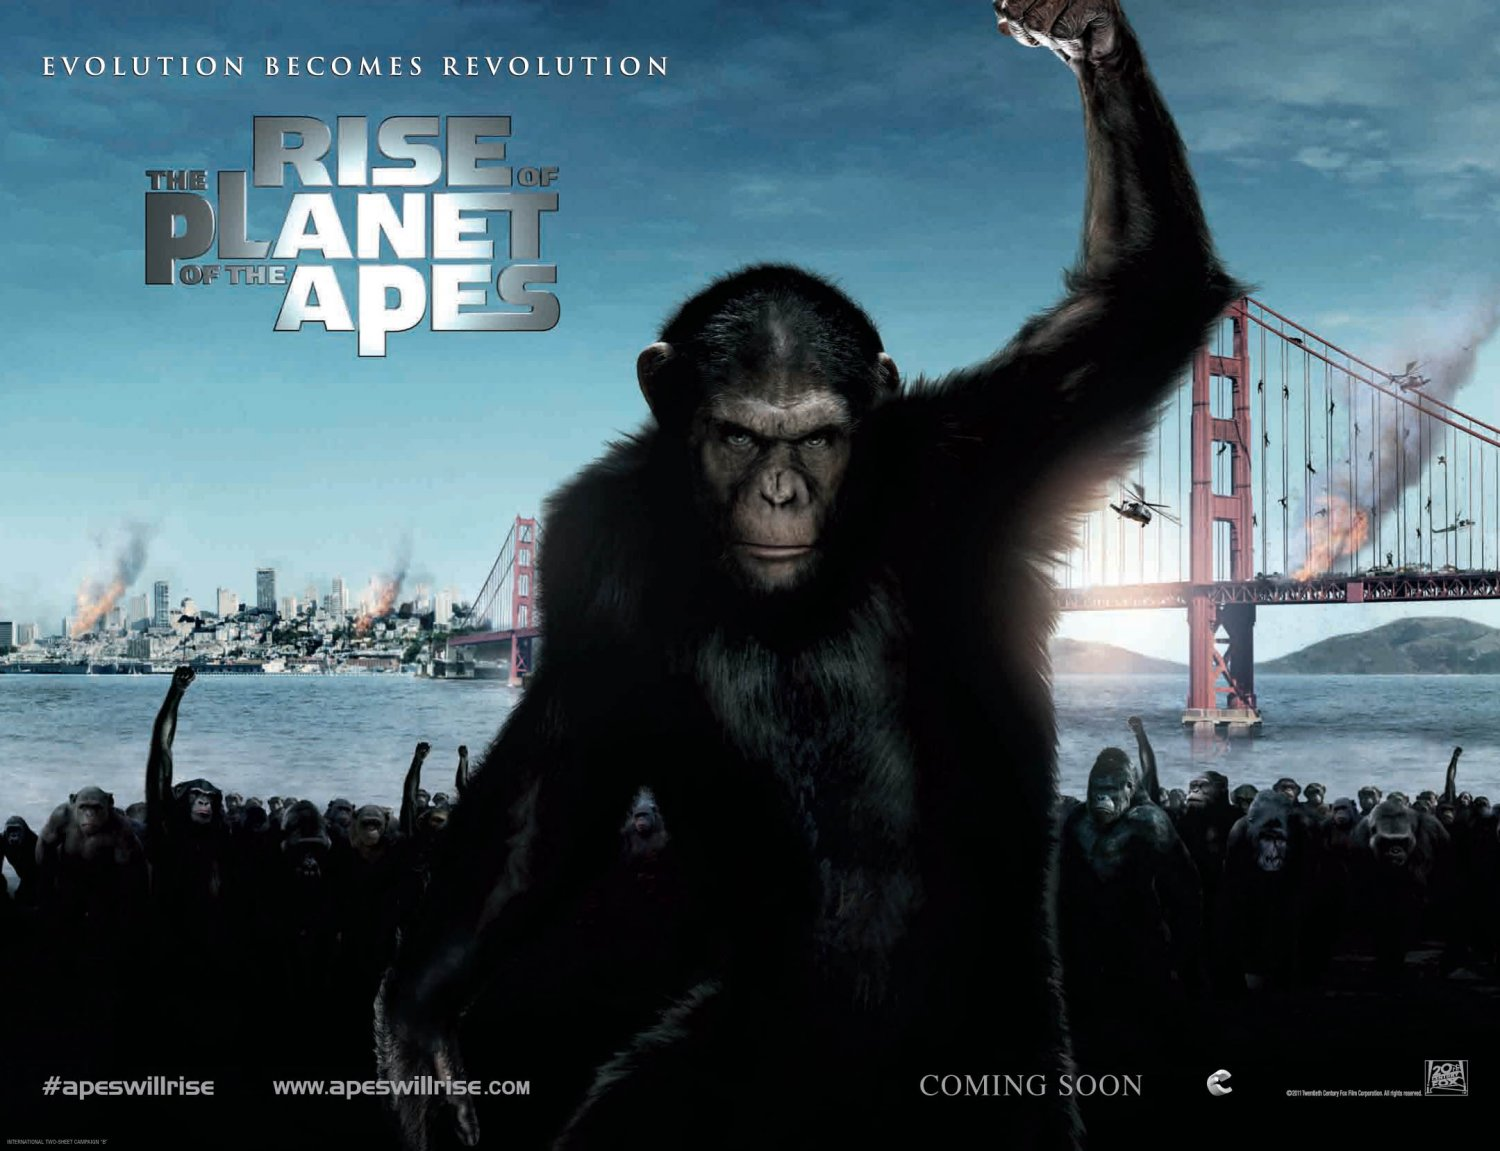 http://3.bp.blogspot.com/-3IrwNDc64IQ/Tik_KL2f3PI/AAAAAAAAATk/S1DJ56-GV9c/s1600/Rise-of-the-Planet-of-the-Apes-Wallpaper-02.jpg